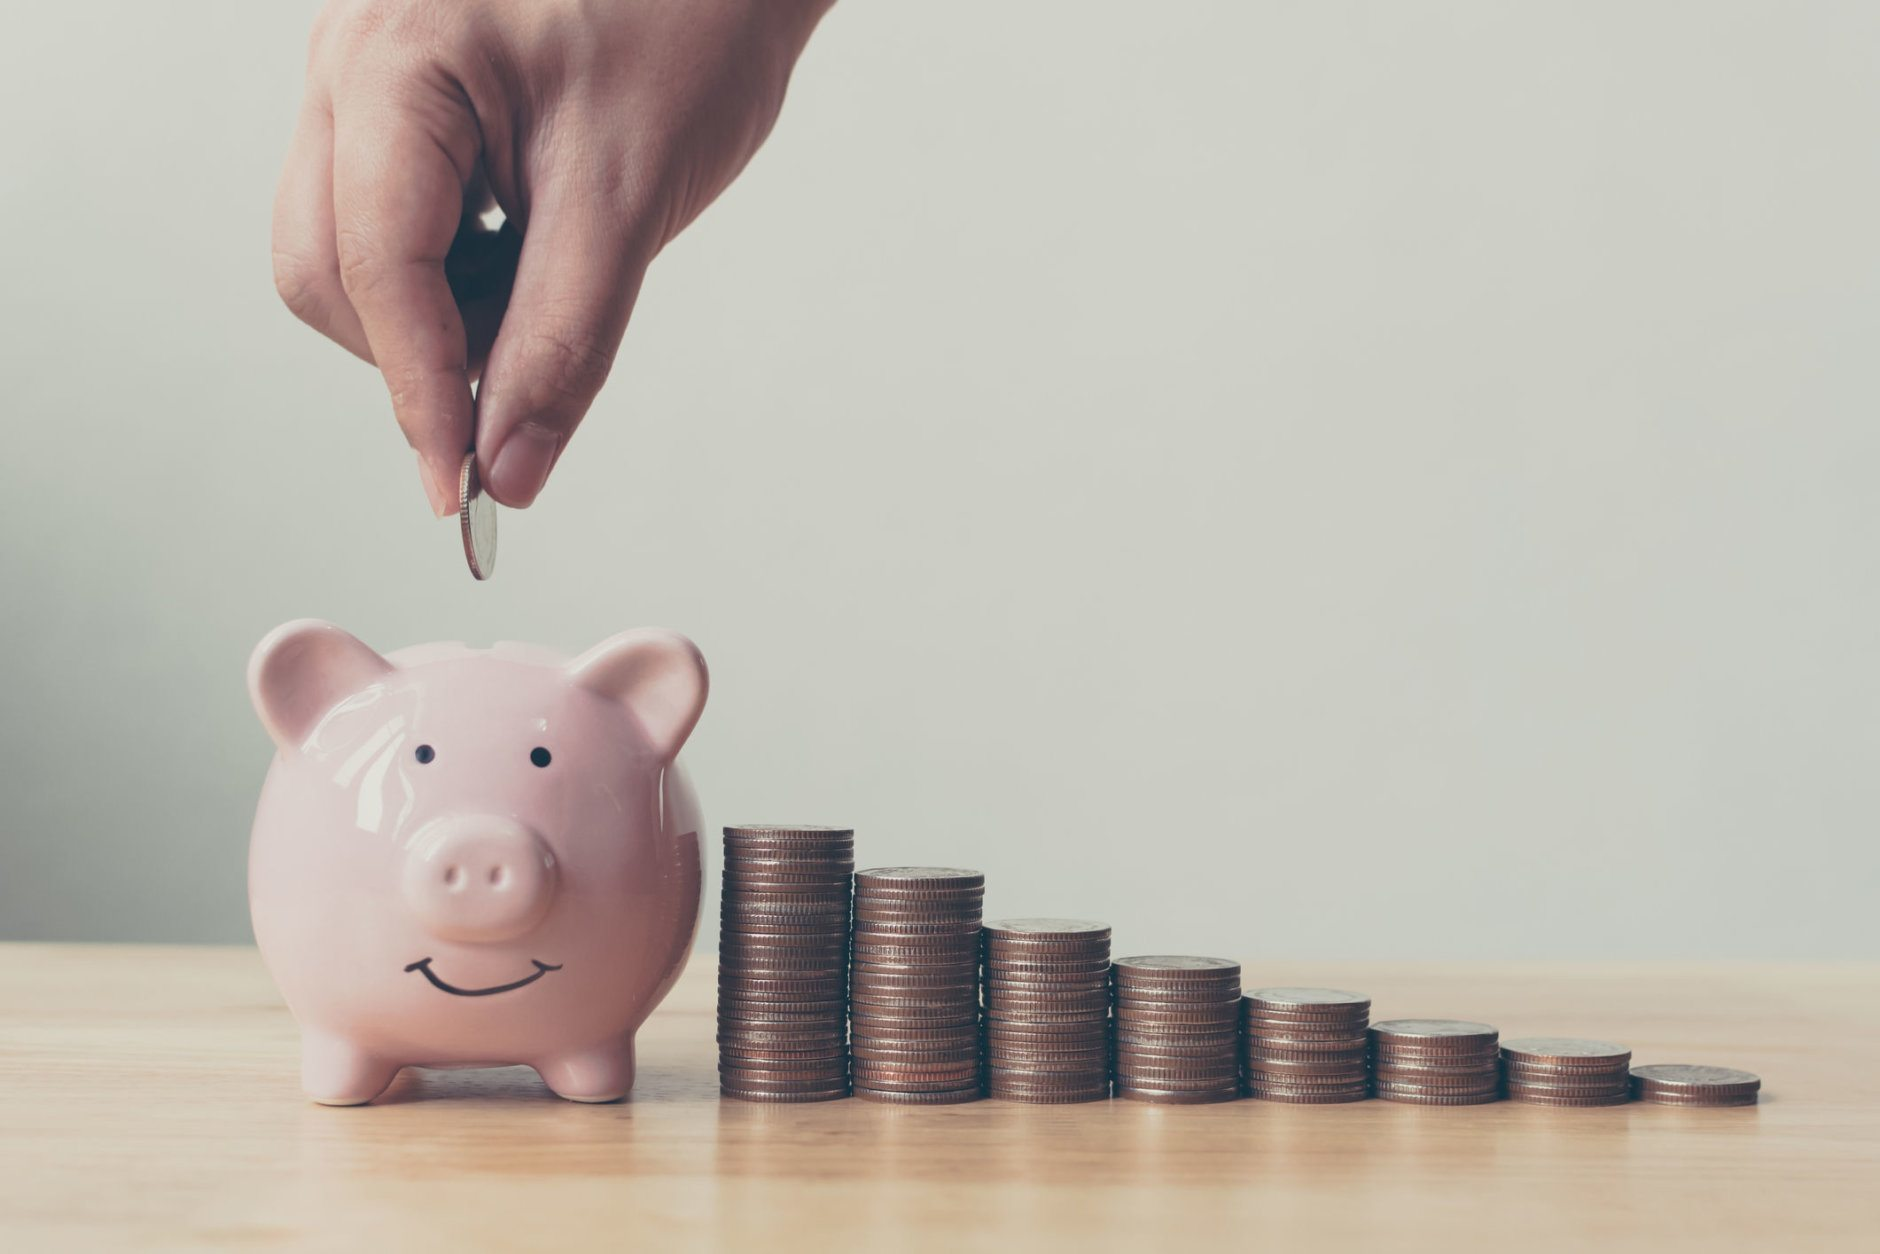 Hand of male or female putting coins in piggy bank with money stack step growing growth saving money. Concept finance business investment